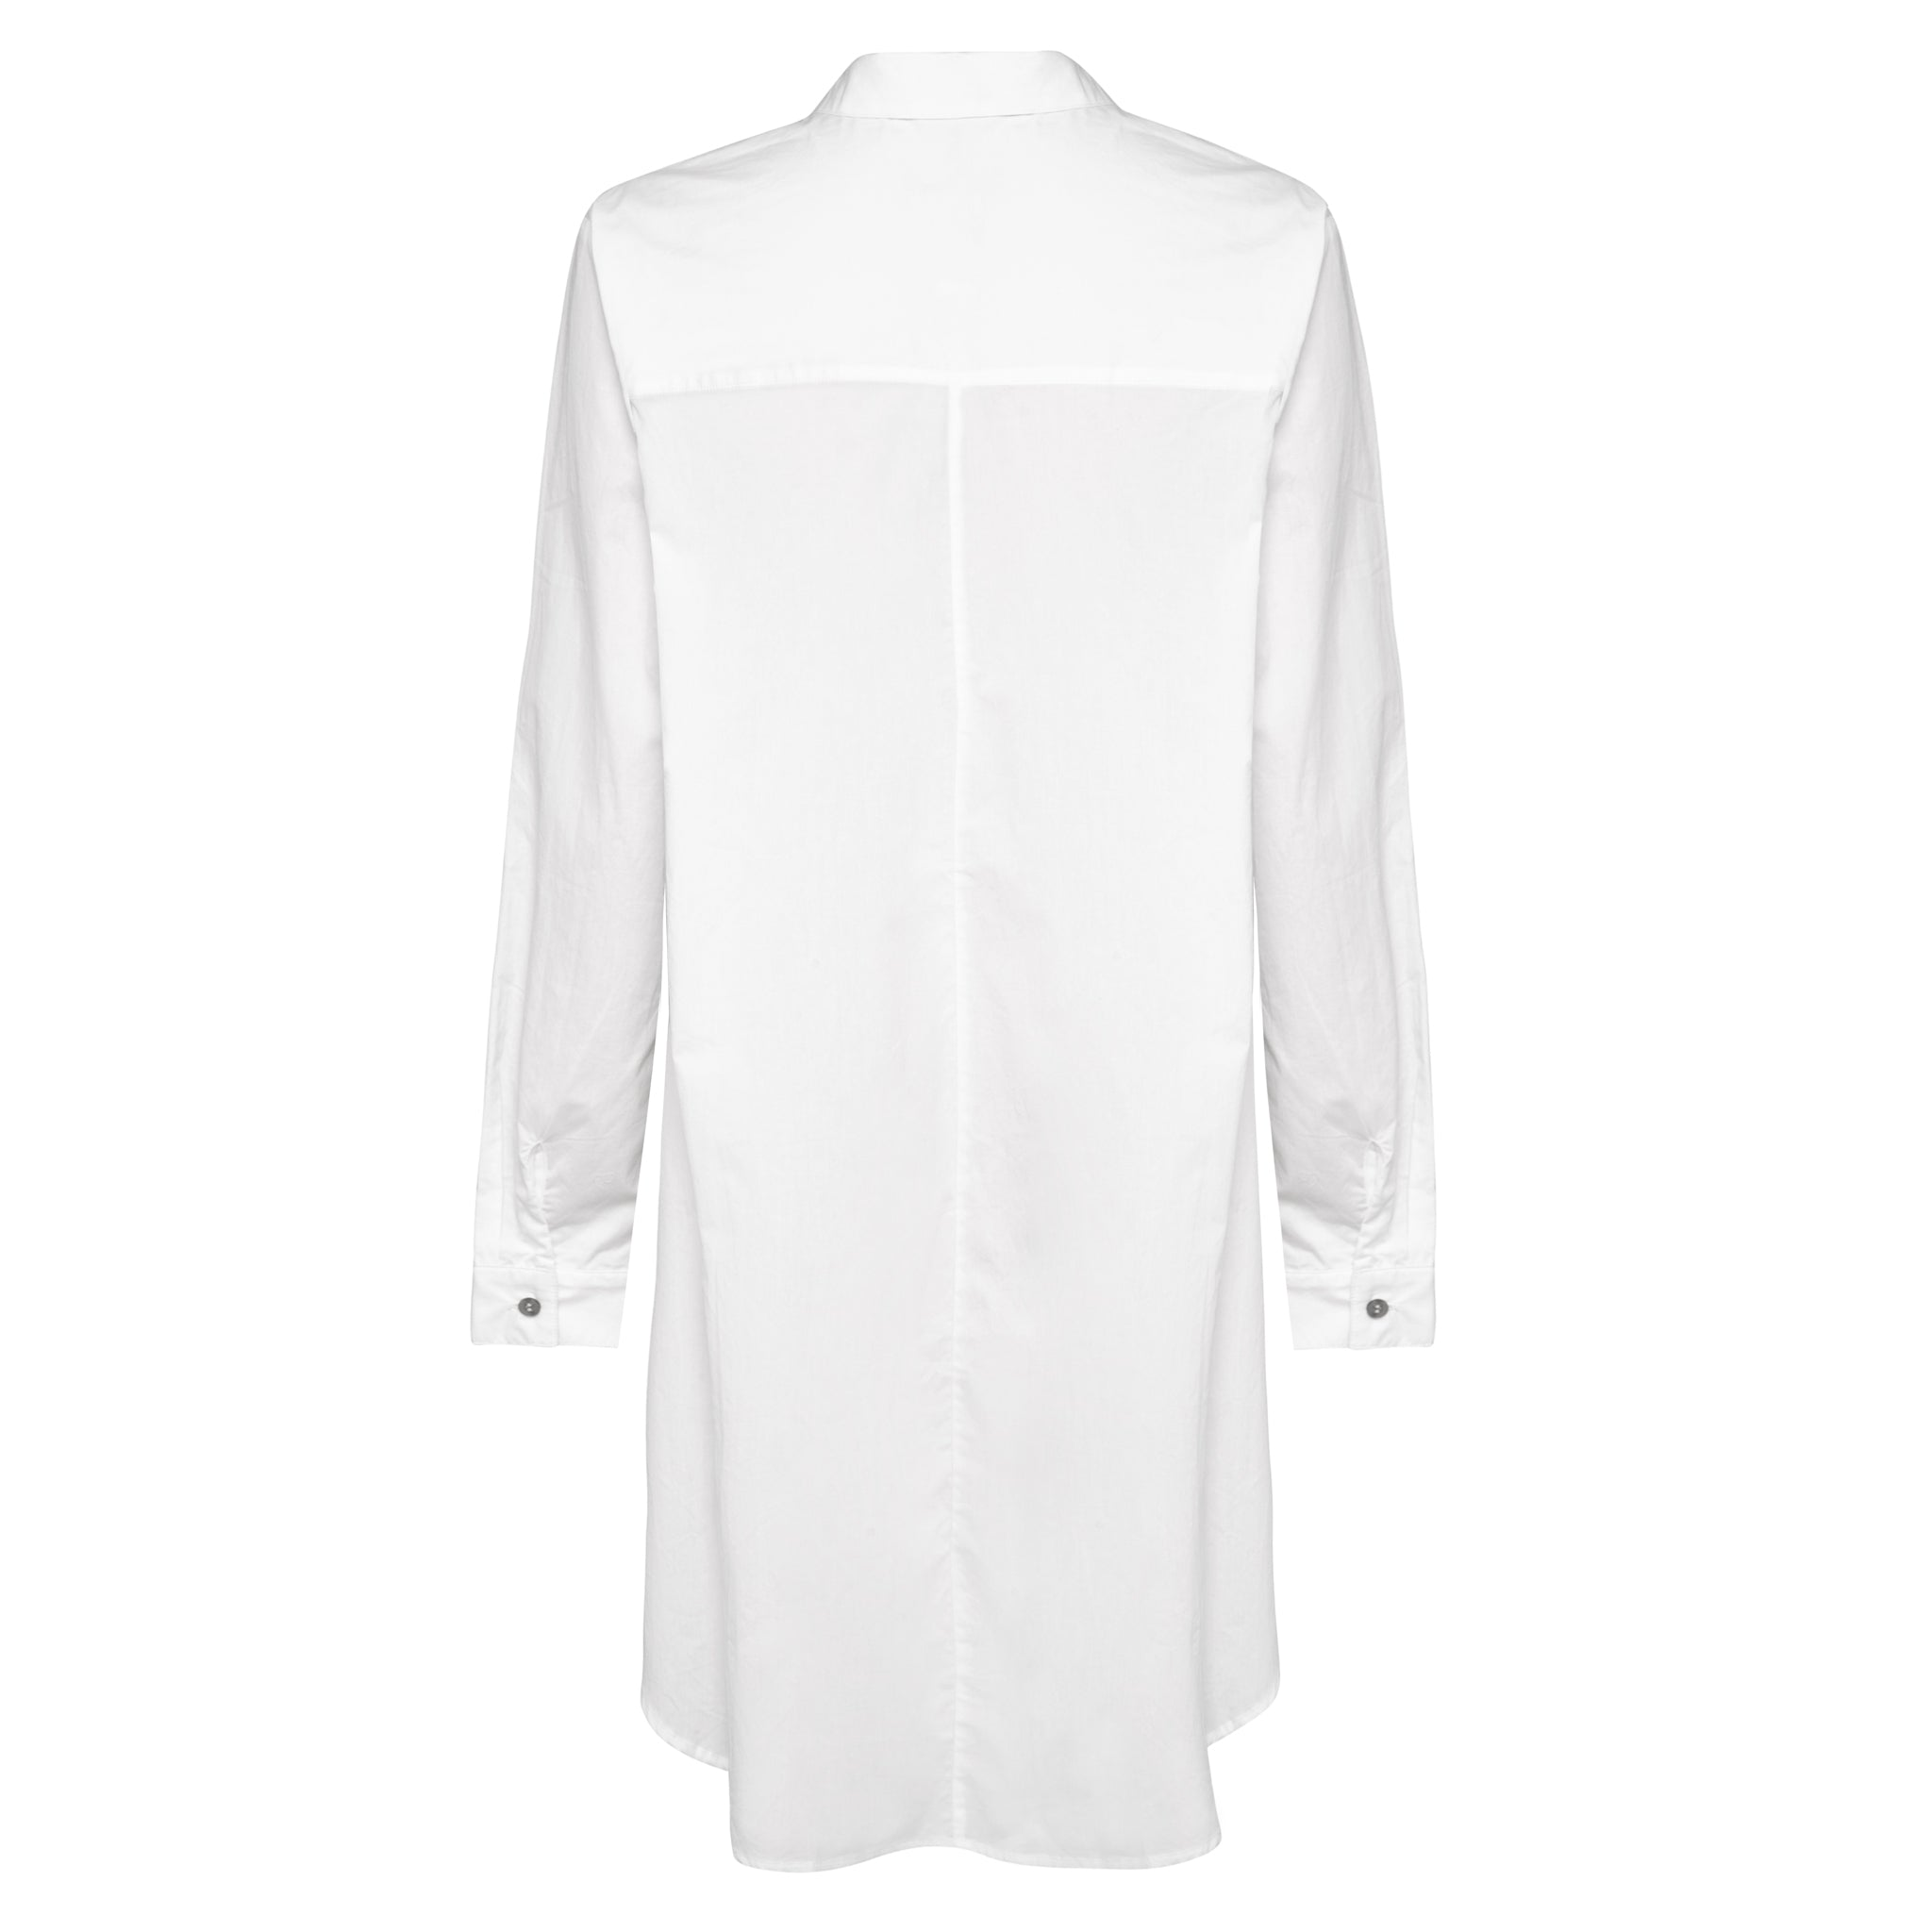 Abey Long Line Shirt - White